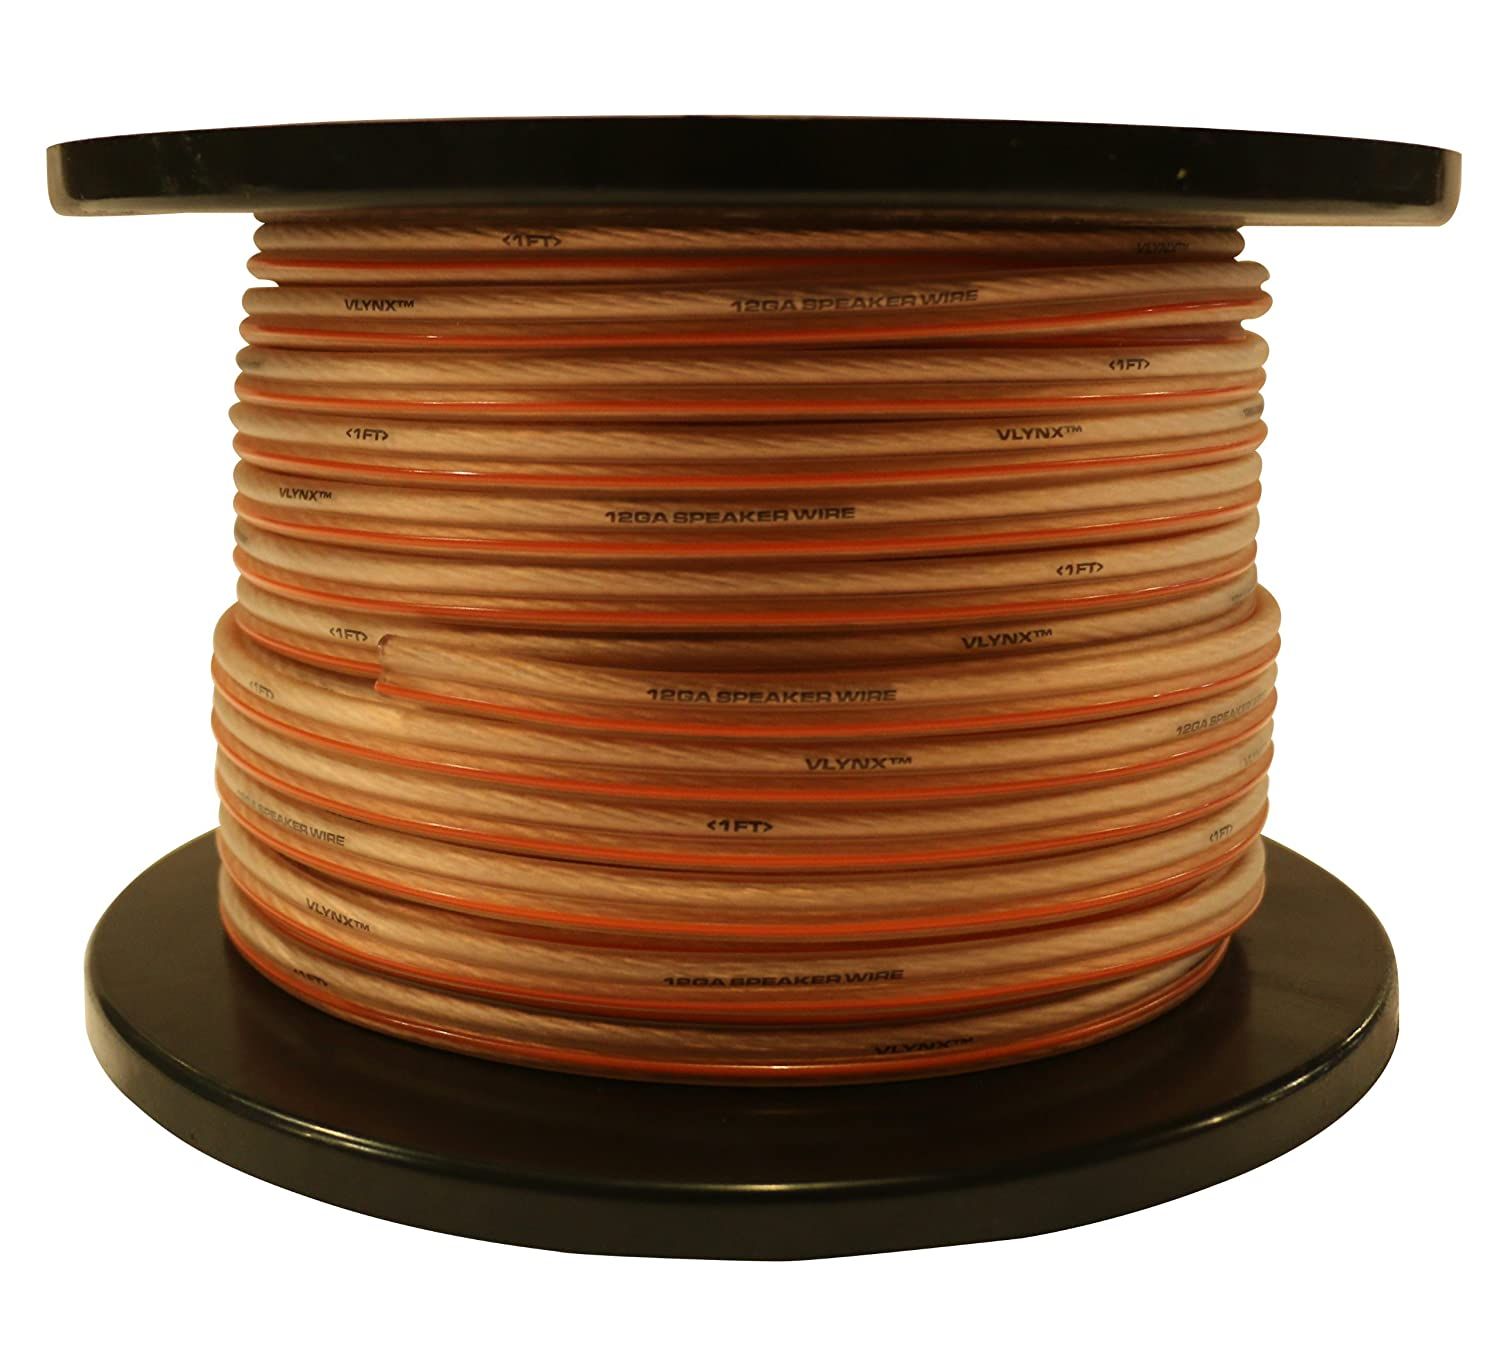 12 Gauge 200ft Speaker Wire Audio Installation True 12ga Cable Wiring Vlynx Soft Spool Musical Instruments